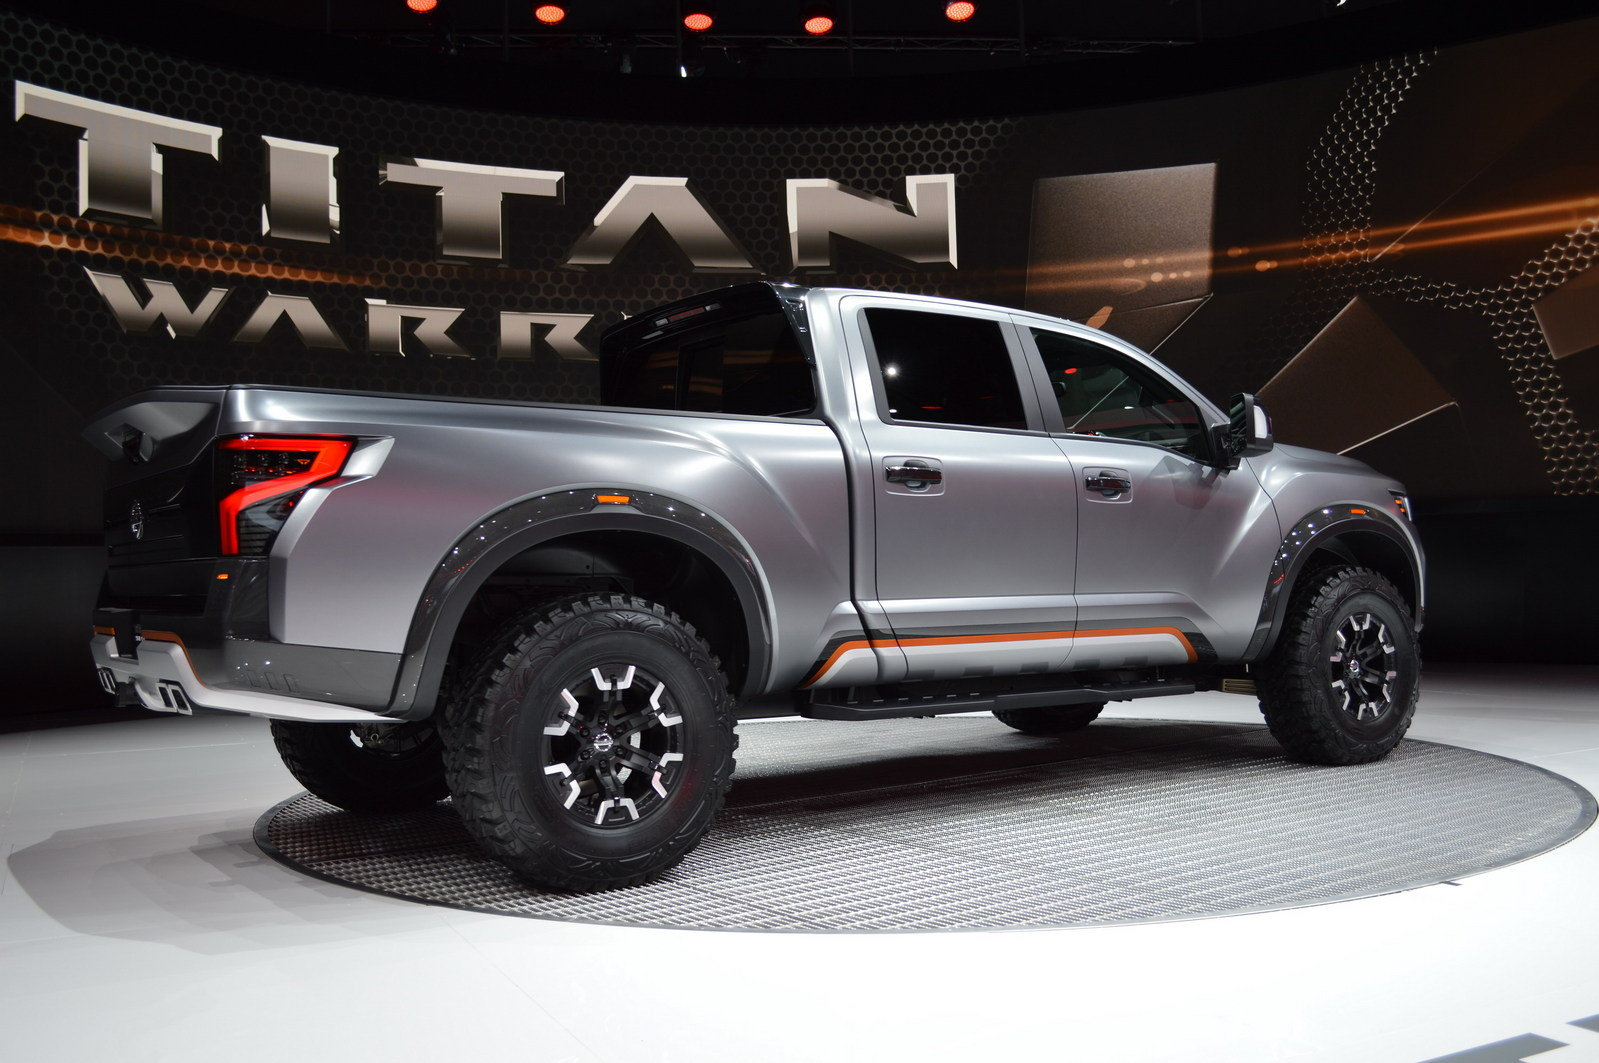 2016 nissan titan warrior concept picture 661596 truck review top speed. Black Bedroom Furniture Sets. Home Design Ideas